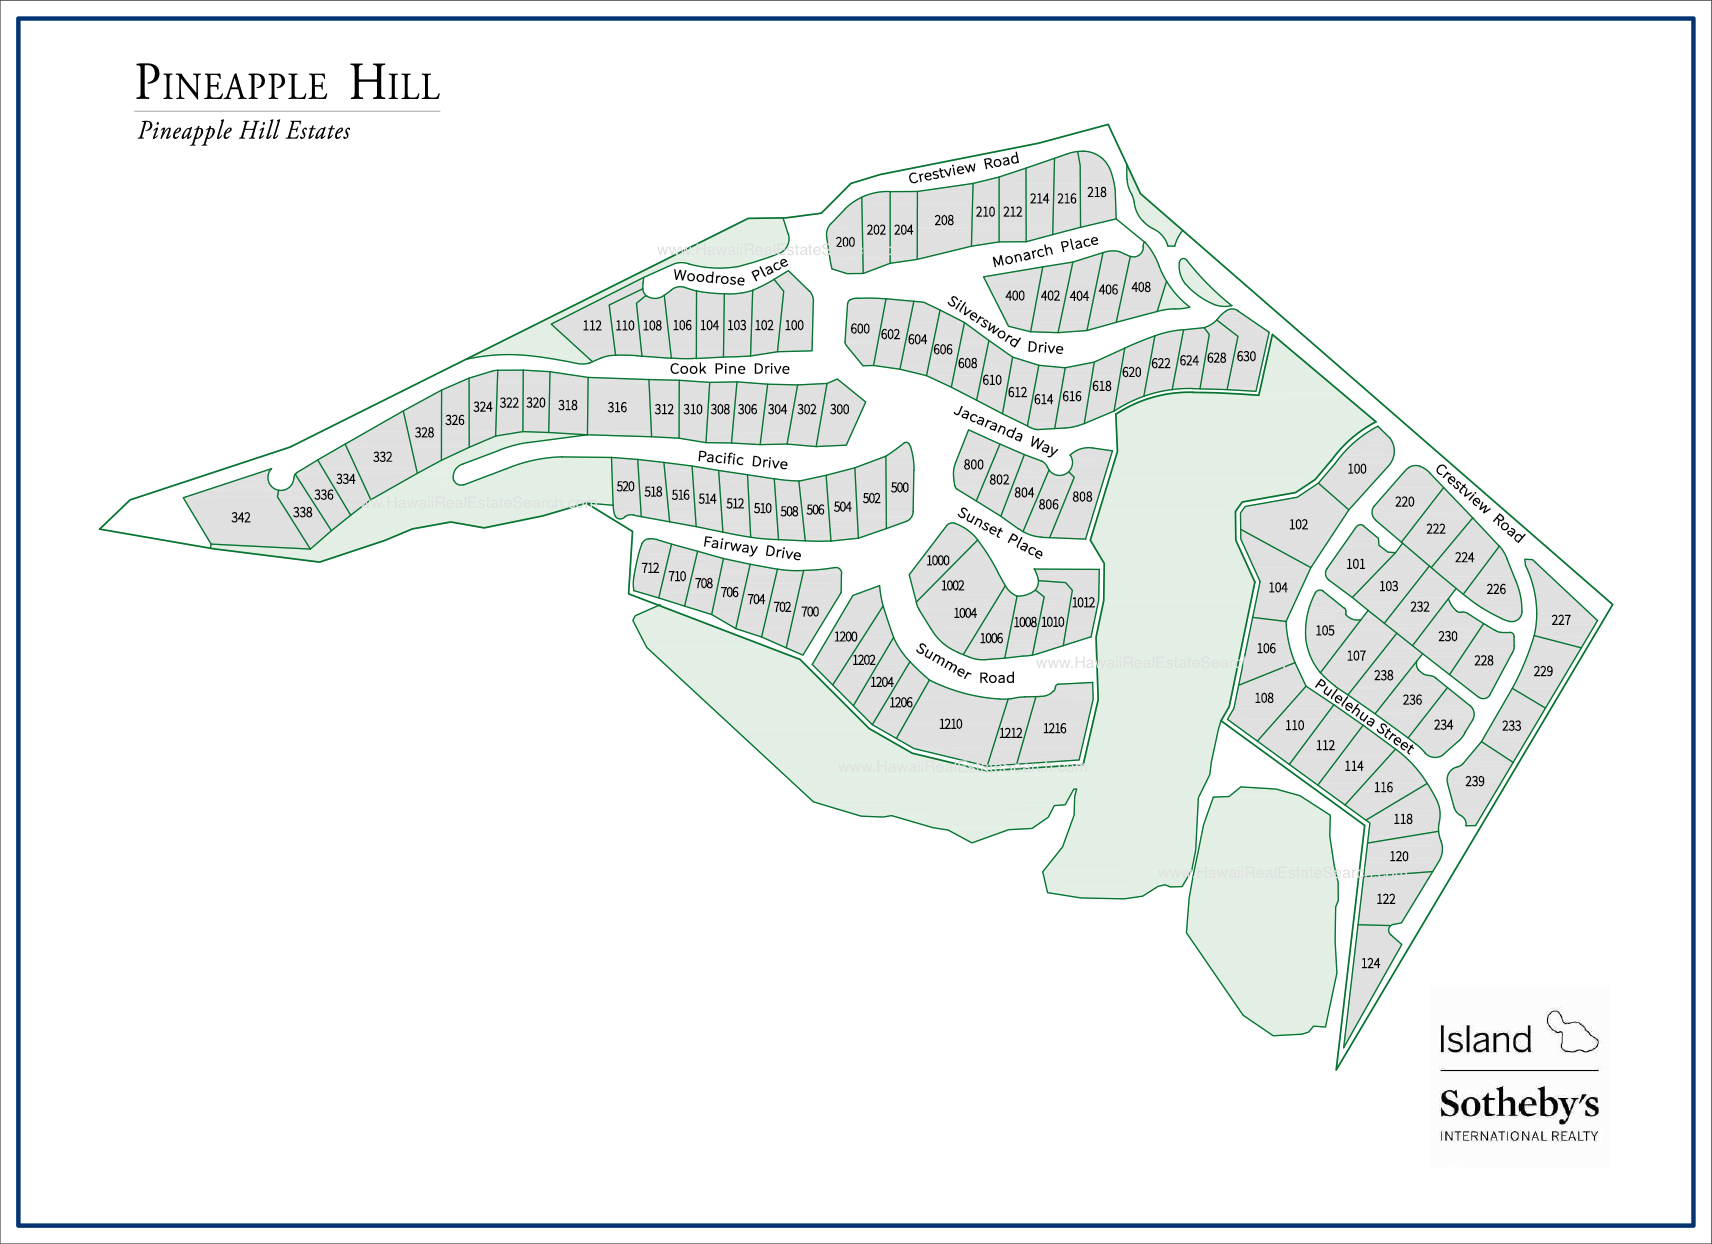 pineapple hill map kapalua